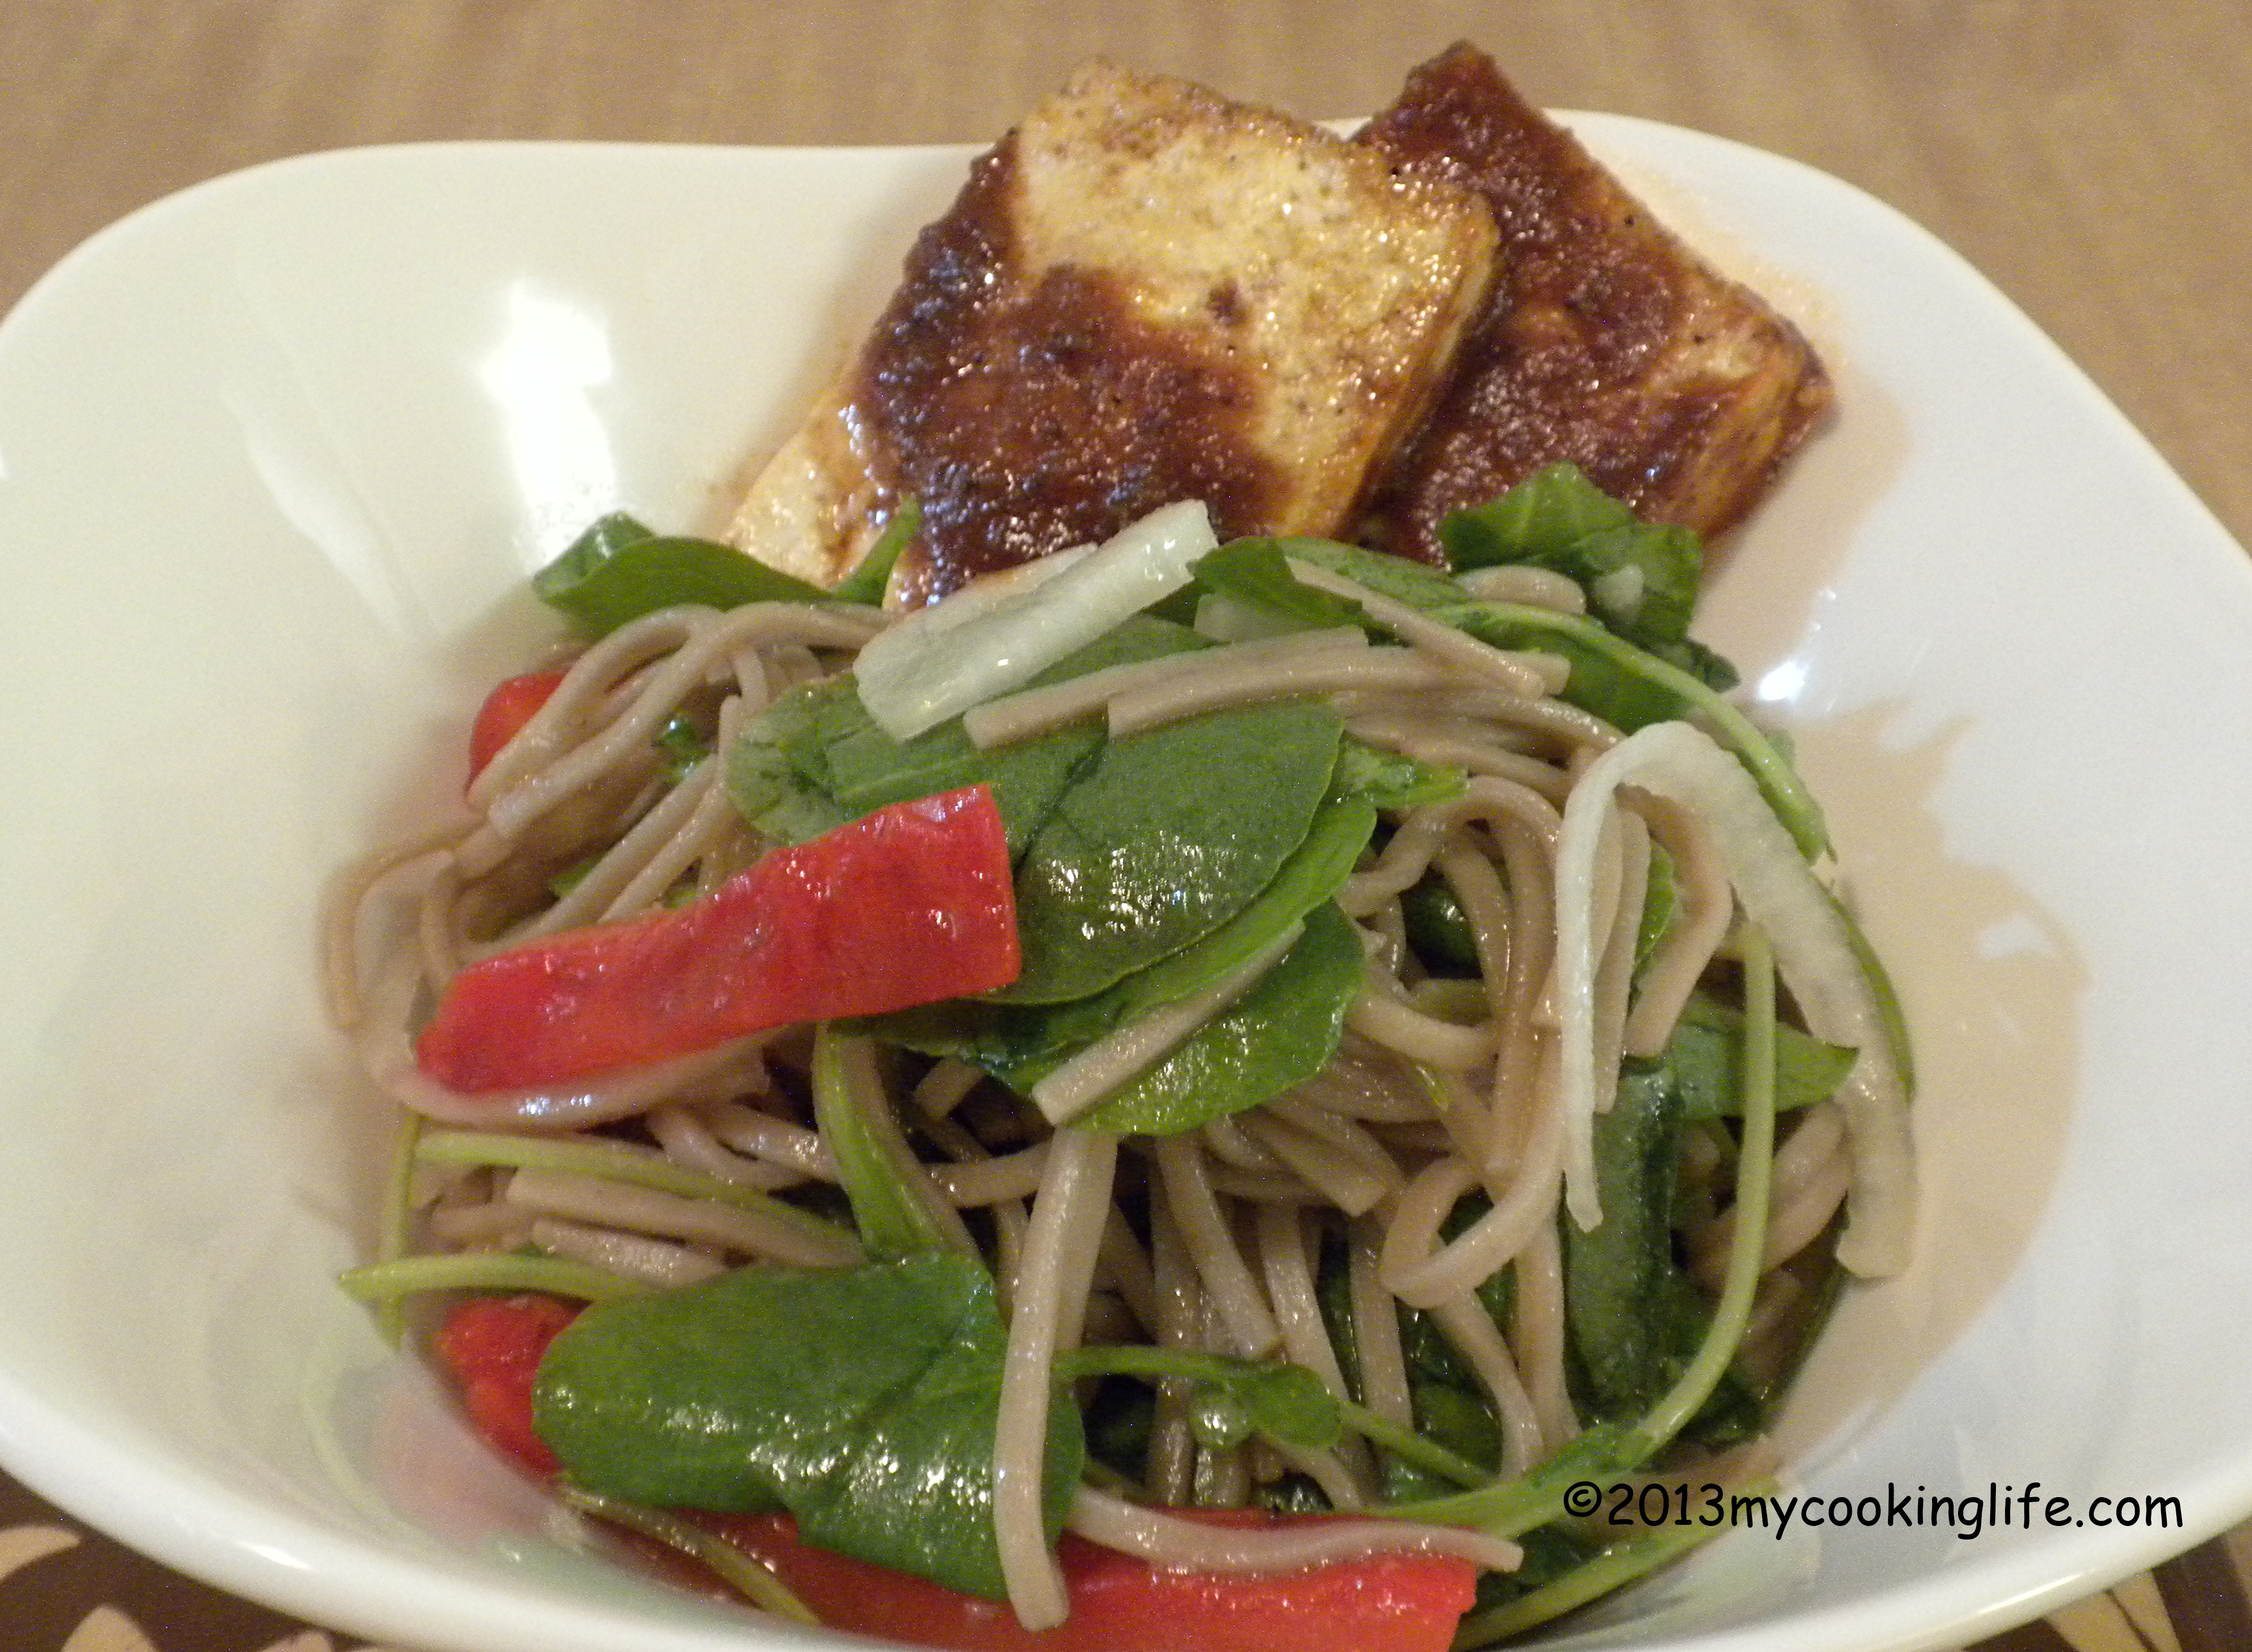 Cold soba salad served with a couple slices of barbecued tofu.